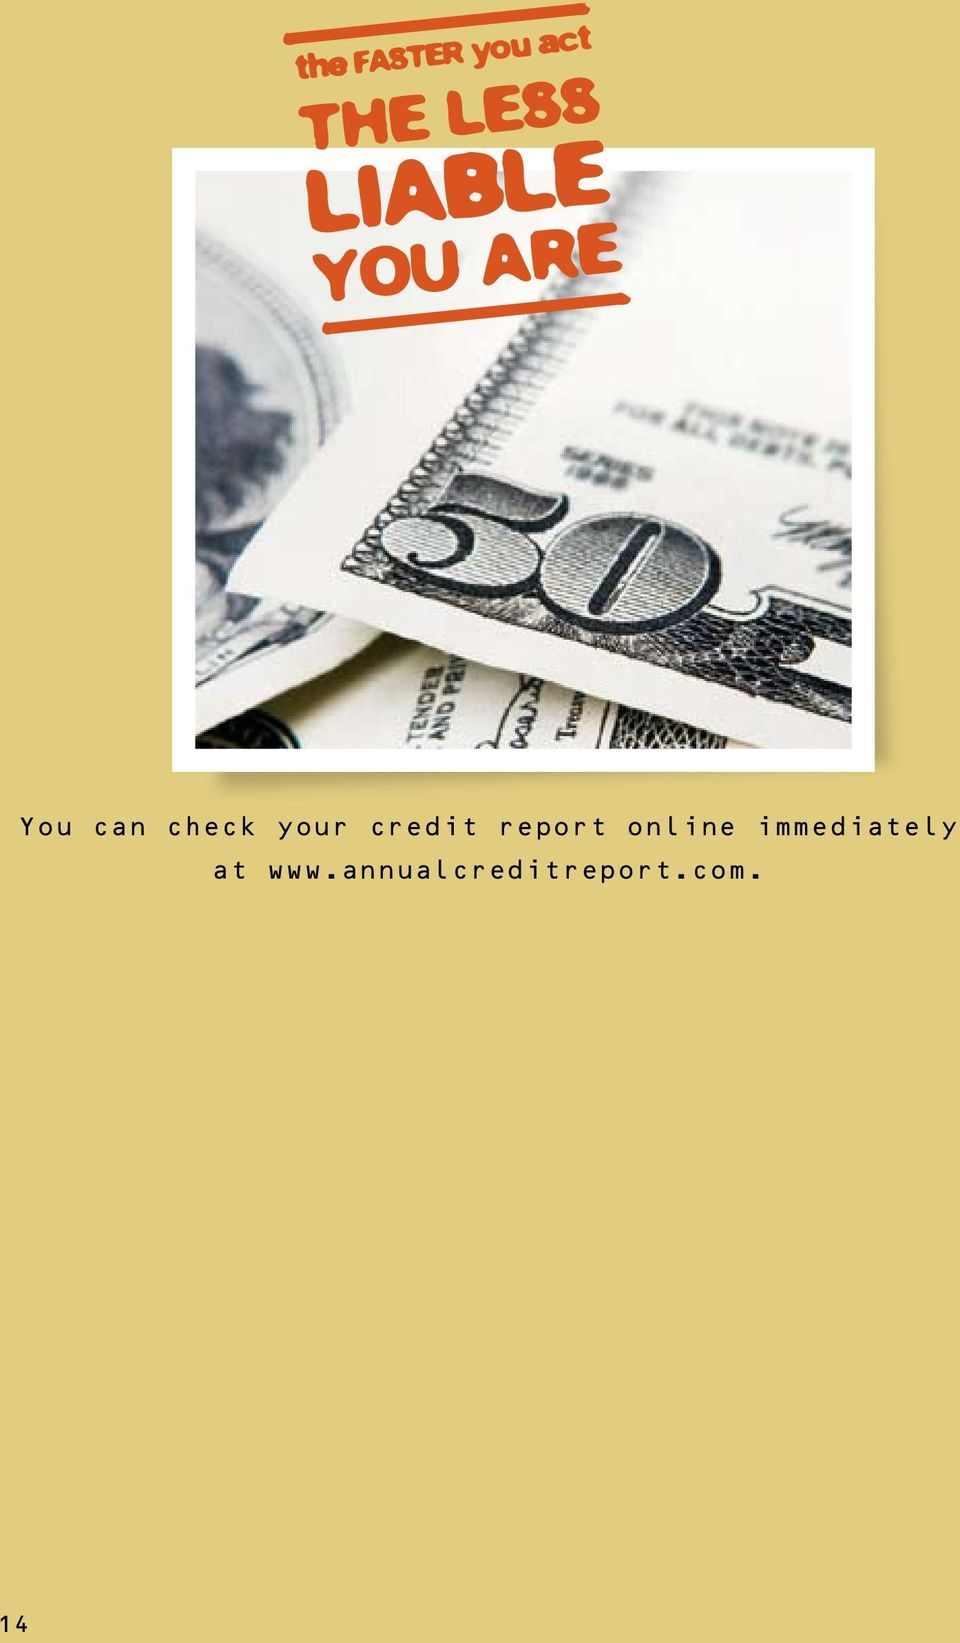 your credit report online